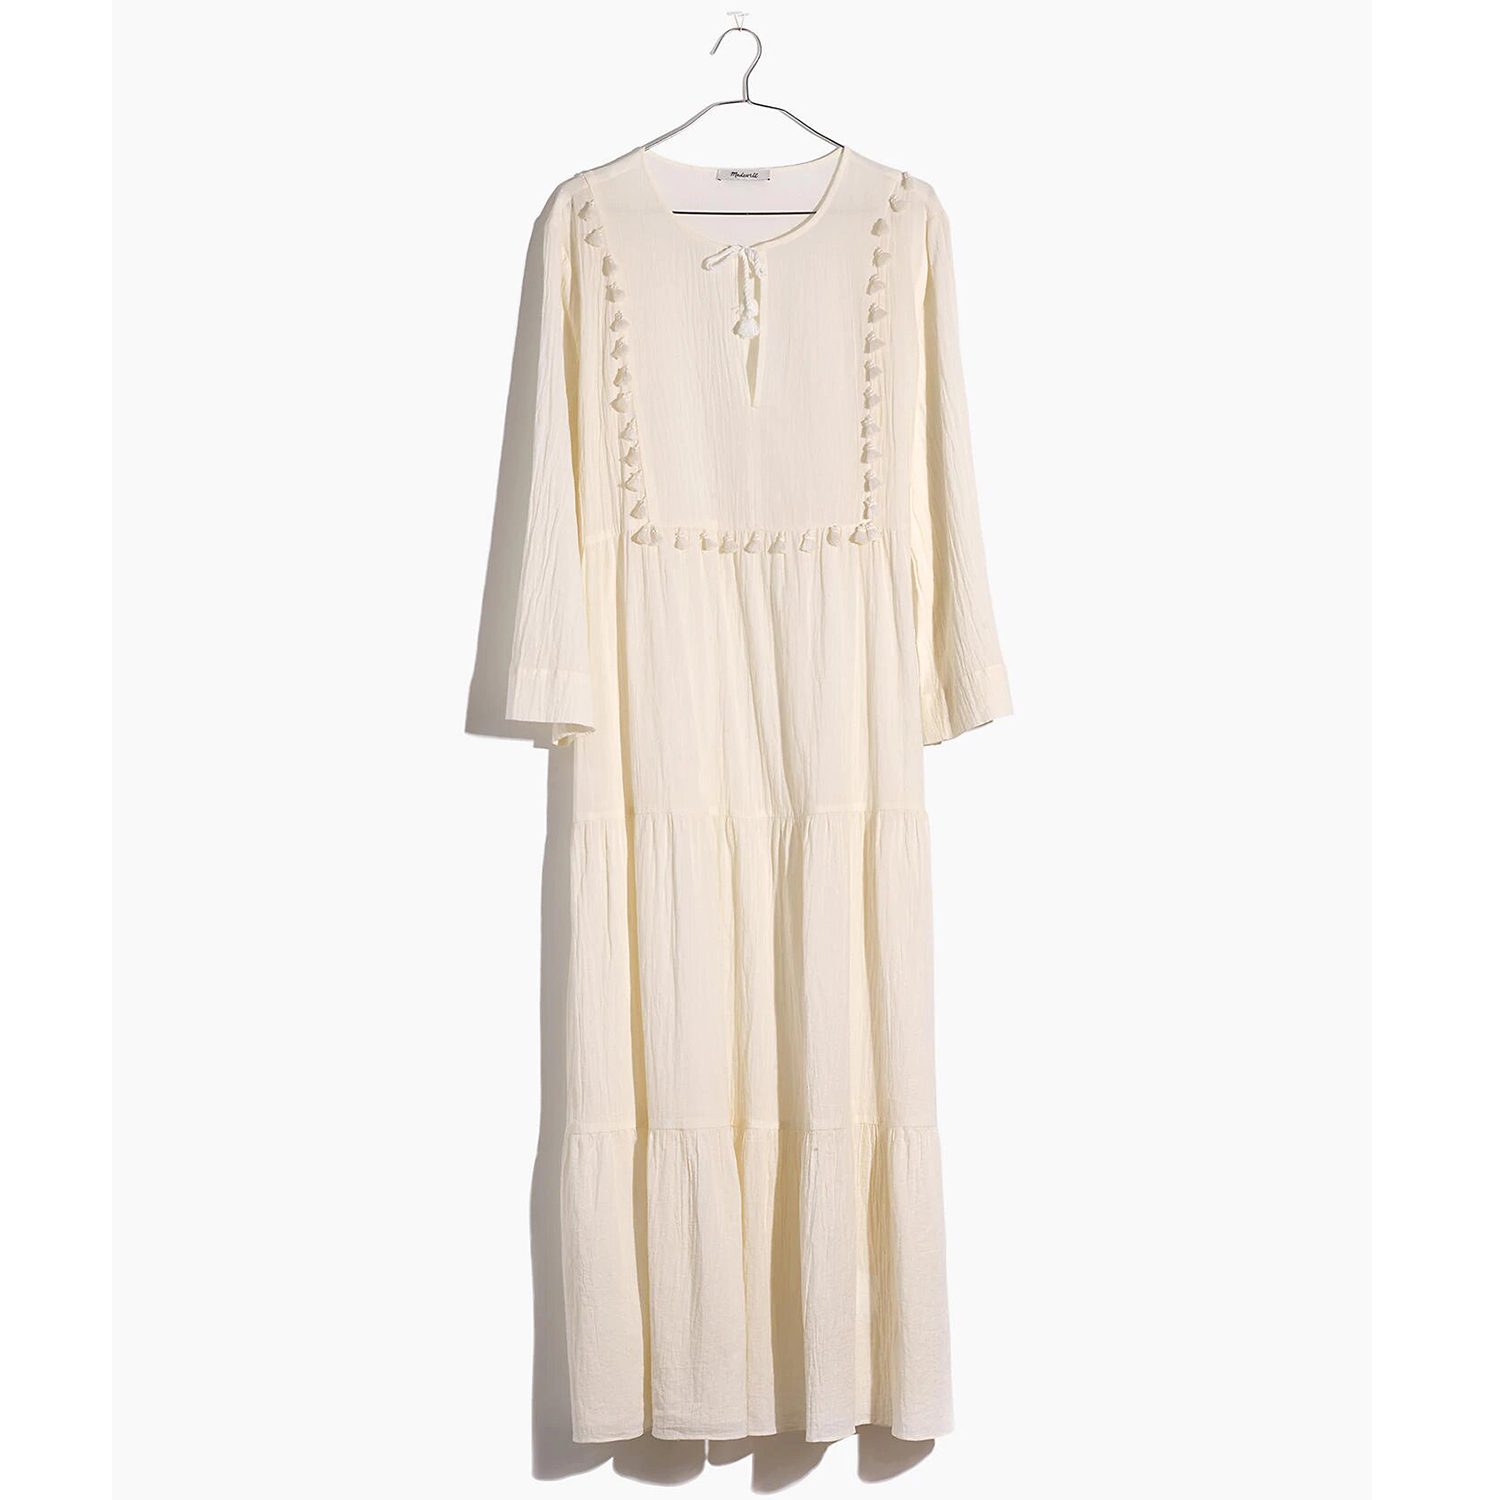 Tiered Cover-Up Caftan Dress